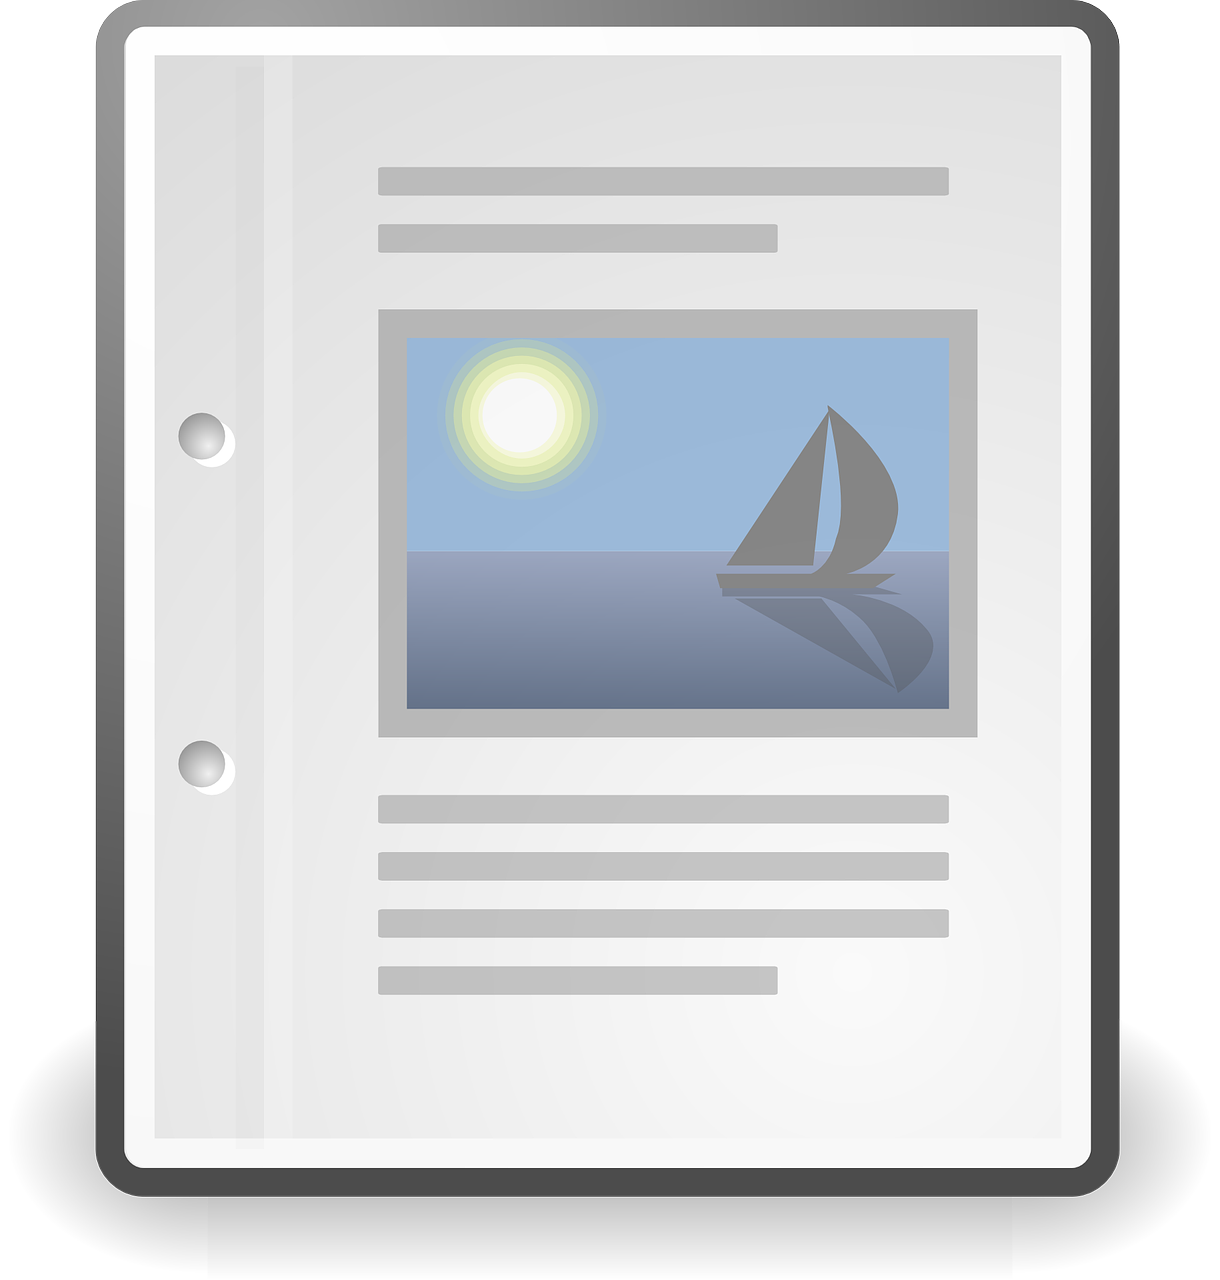 document text icon free photo